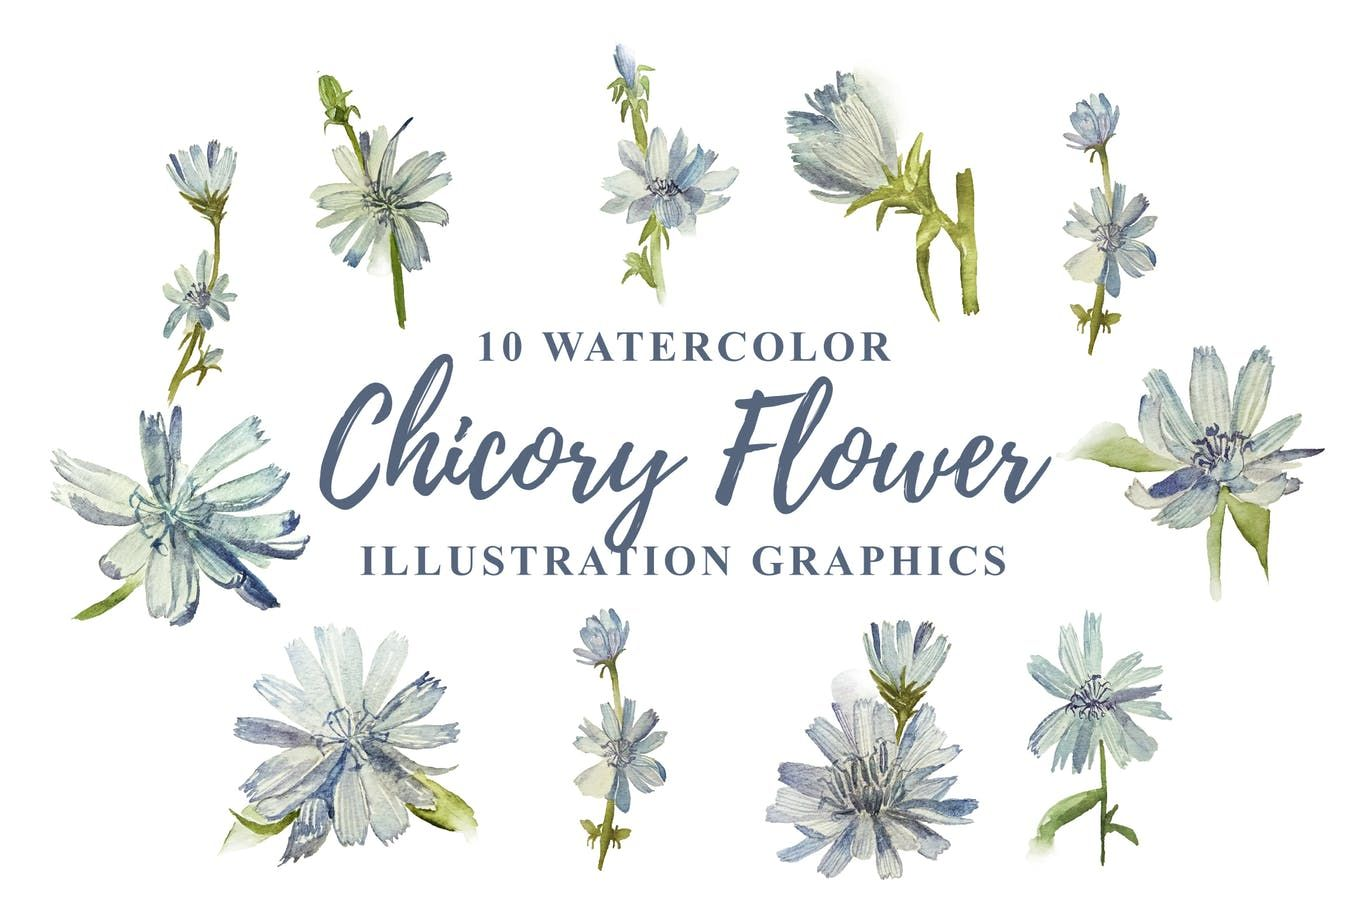 10 Watercolor Chicory Flower Illustration Graphics By Ianmikraz On